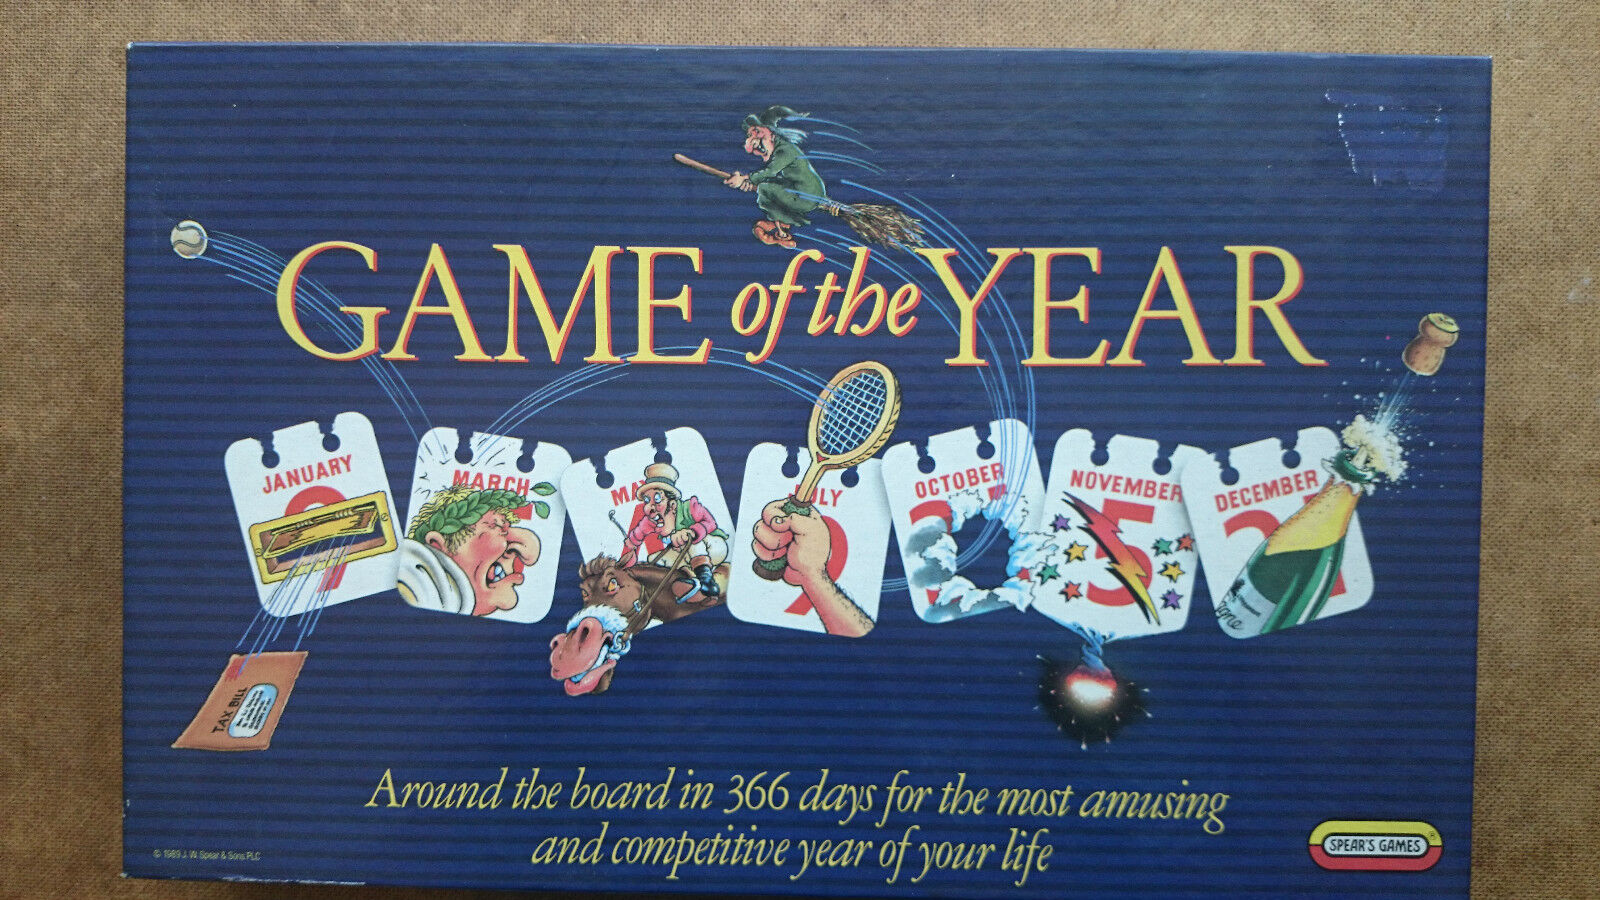 Game of the Year Board Game by Spears 1989